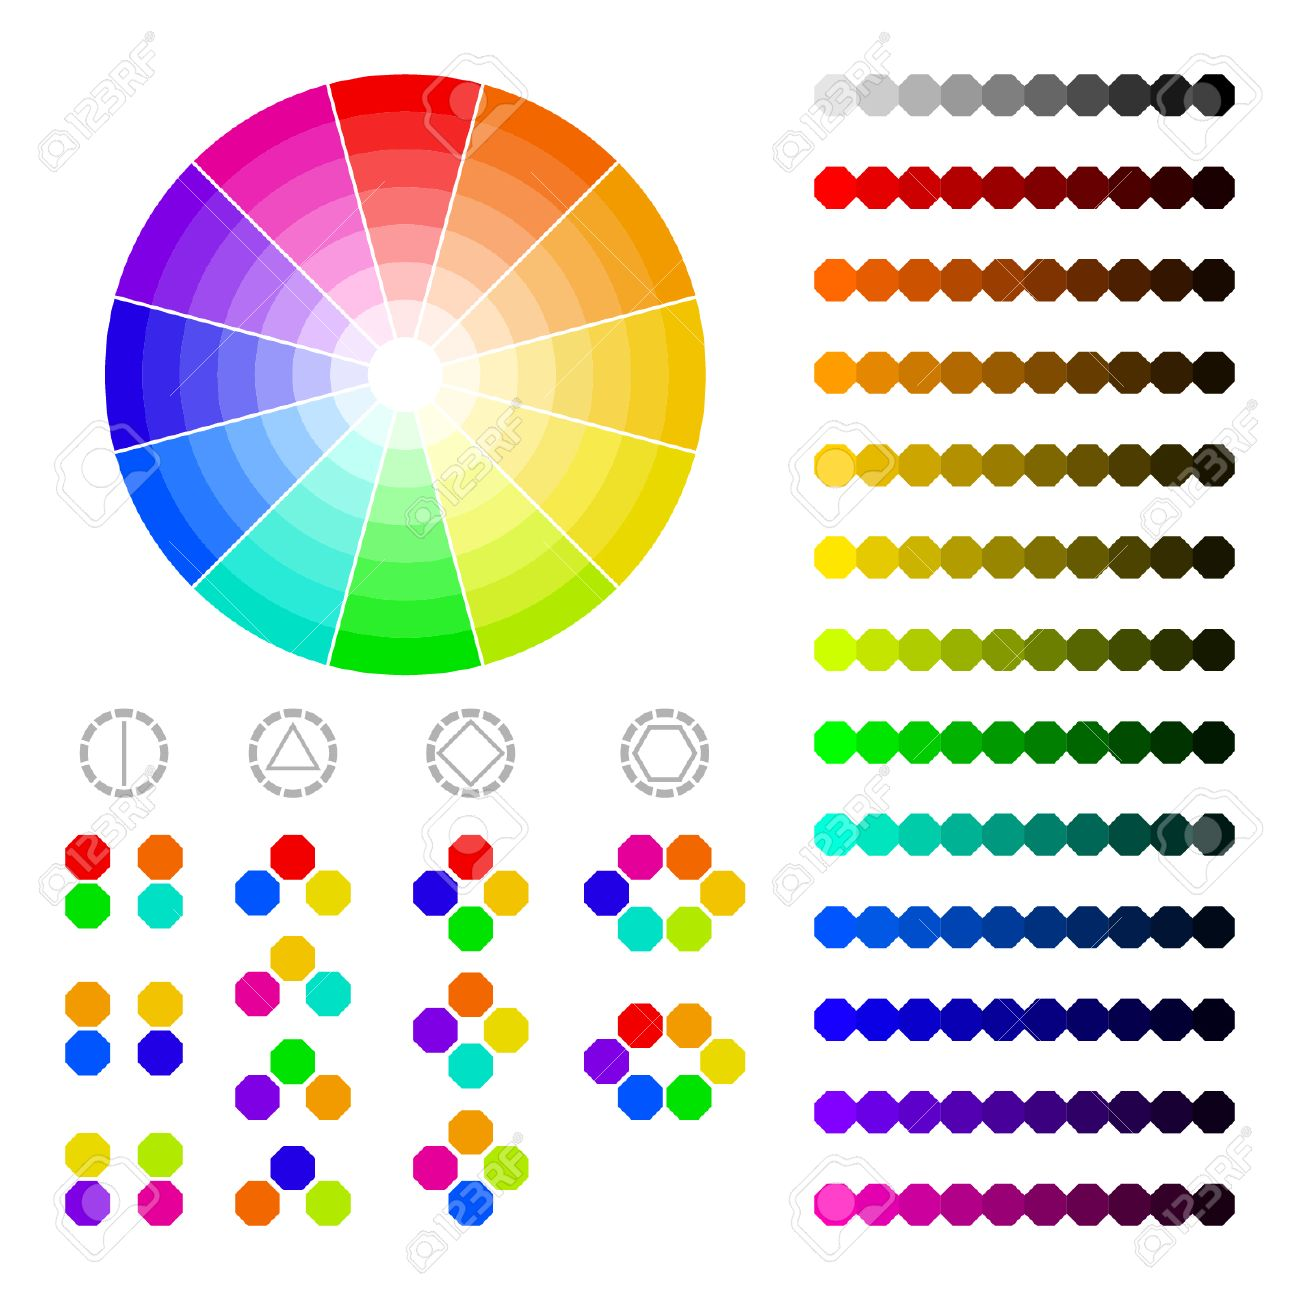 Color Wheel With Shade Of Colors Color Harmony Royalty Free Cliparts